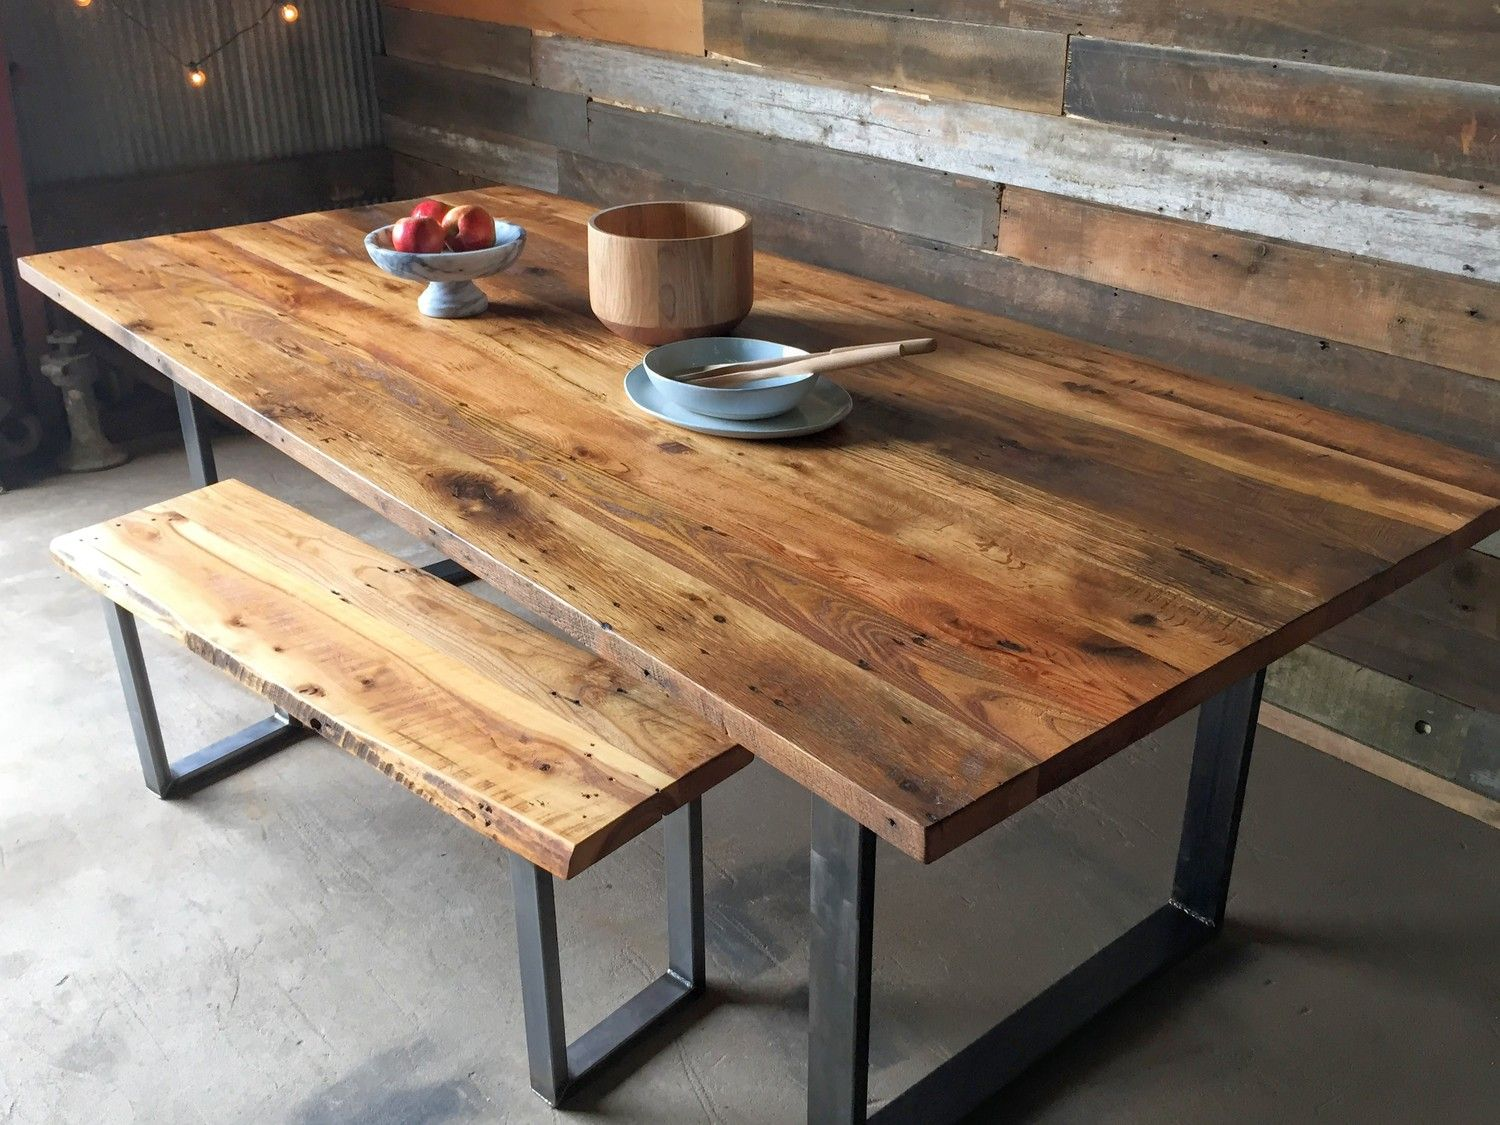 Industrial Modern Dining Table  UShaped Metal Legs Reclaimed - Reclaimed wood dining table